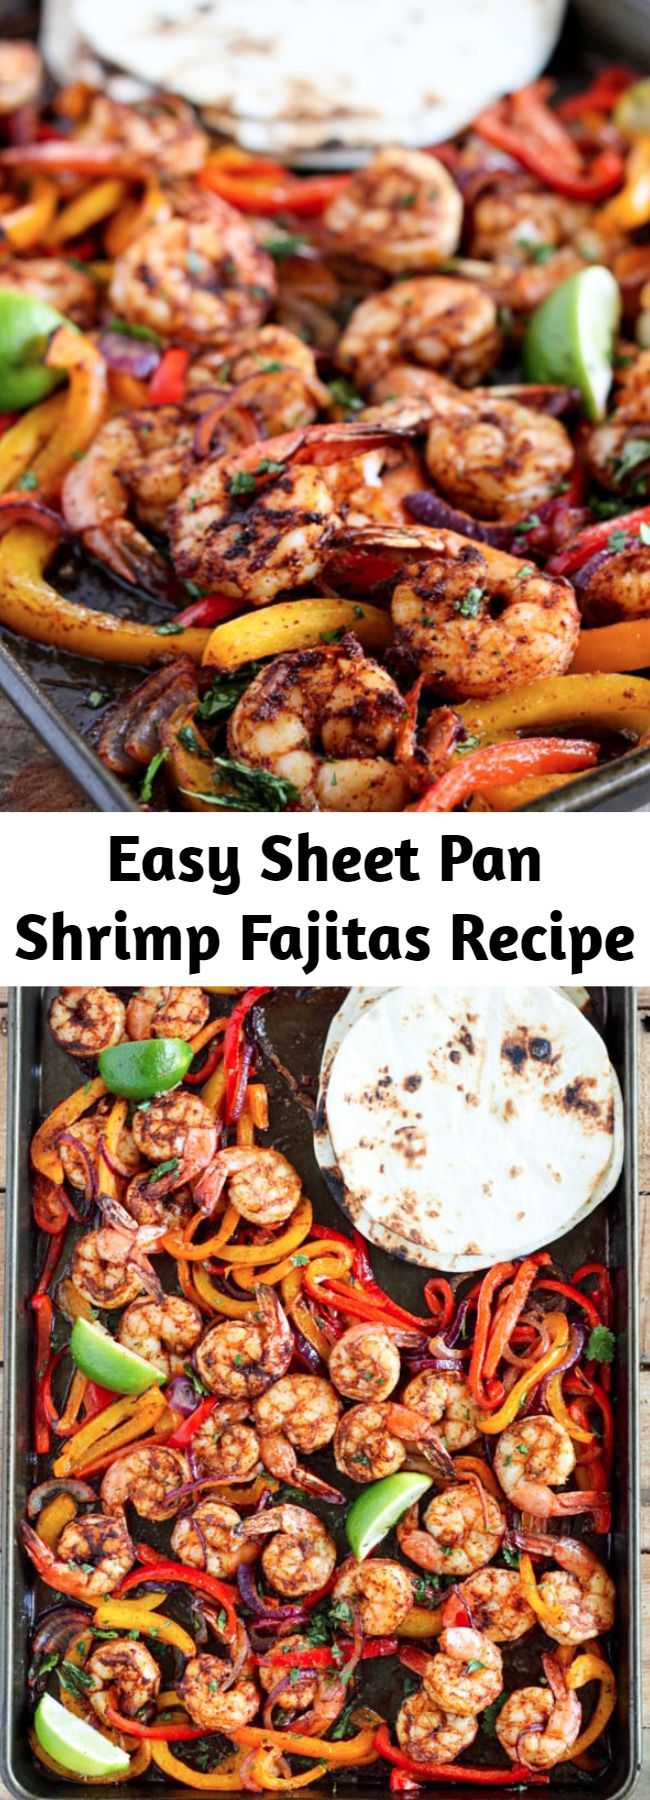 Easy Sheet Pan Shrimp Fajitas Recipe - This shrimp fajita recipe is seriously so easy and delicious! All you have to do is scoop the juicy shrimp, tender bell pepper and onions into a soft warm tortilla for a super fast and easy weeknight dinner!